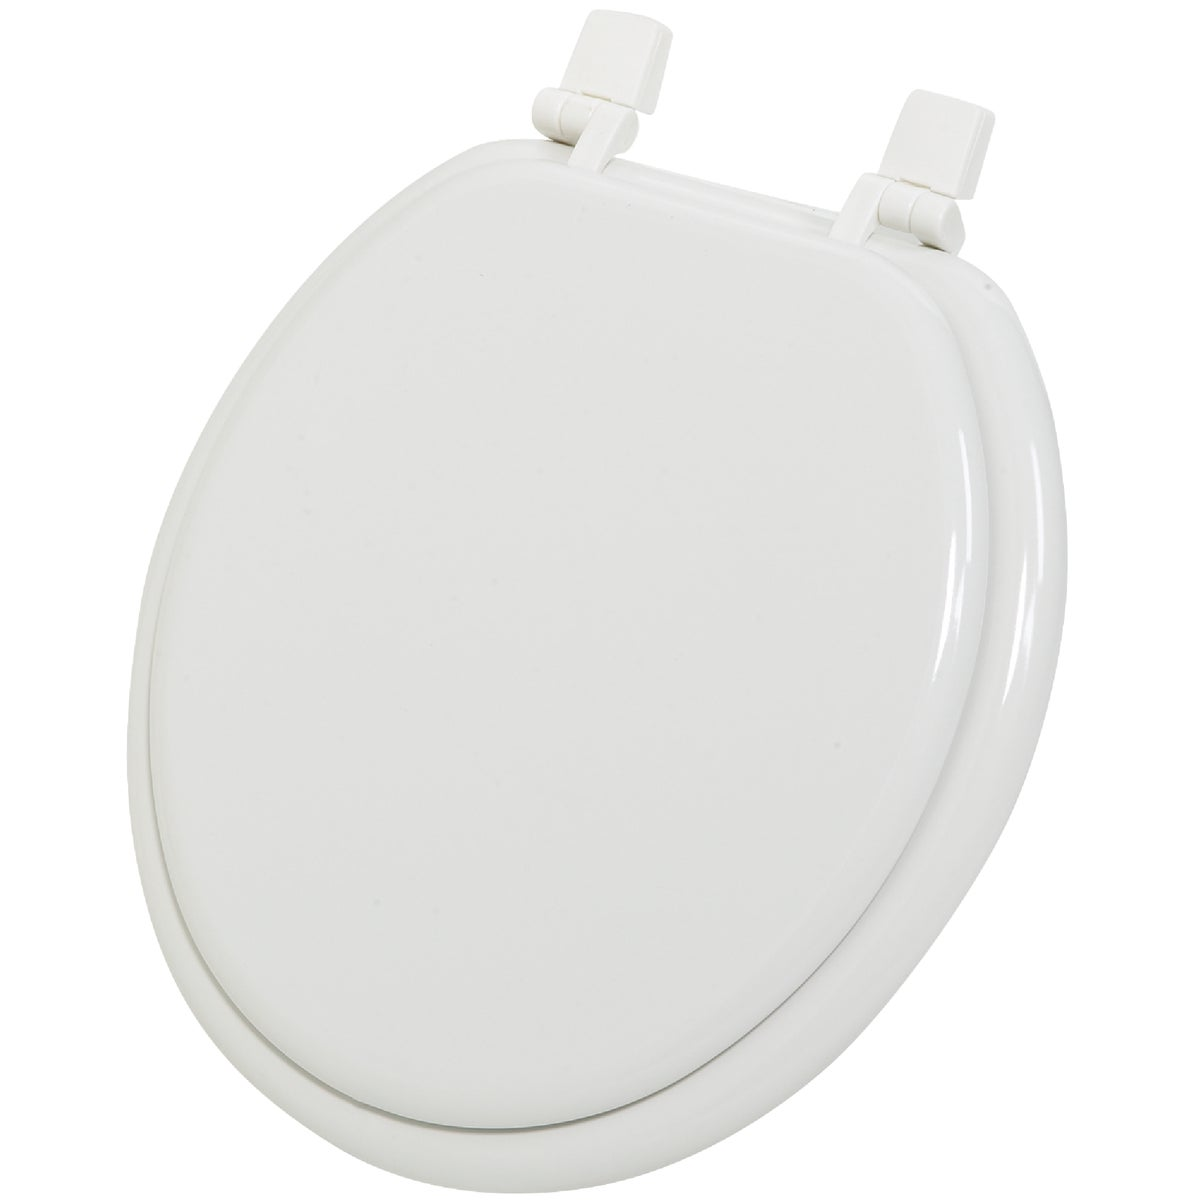 WHITE ROUND WOOD SEAT - WMS-17-R1 by Do it Best